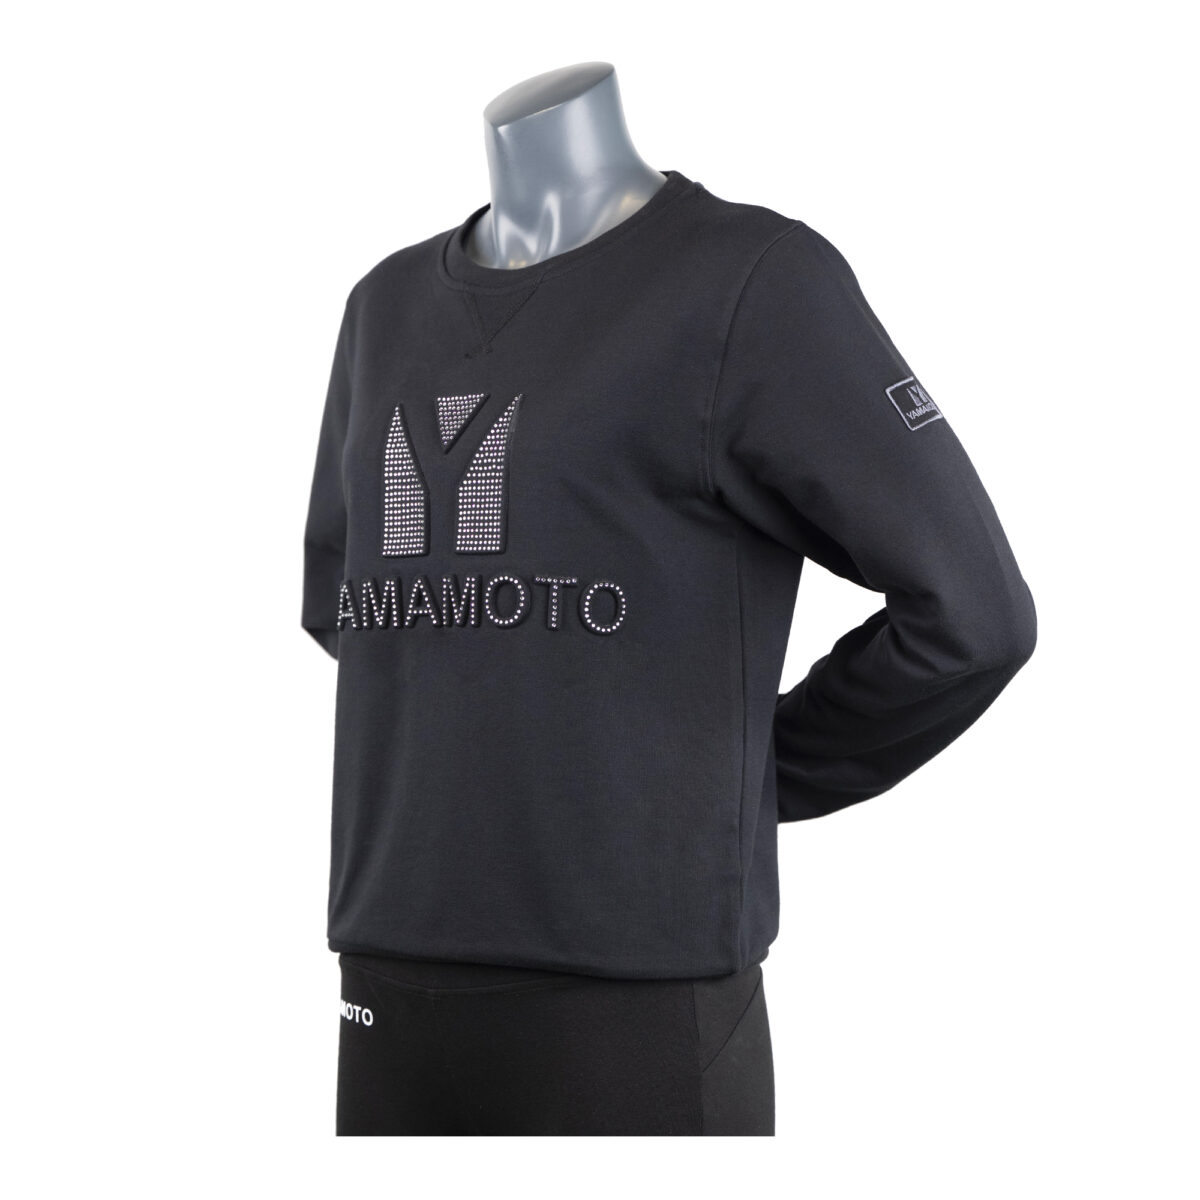 Lady Sweatshirt Embossed with Strass